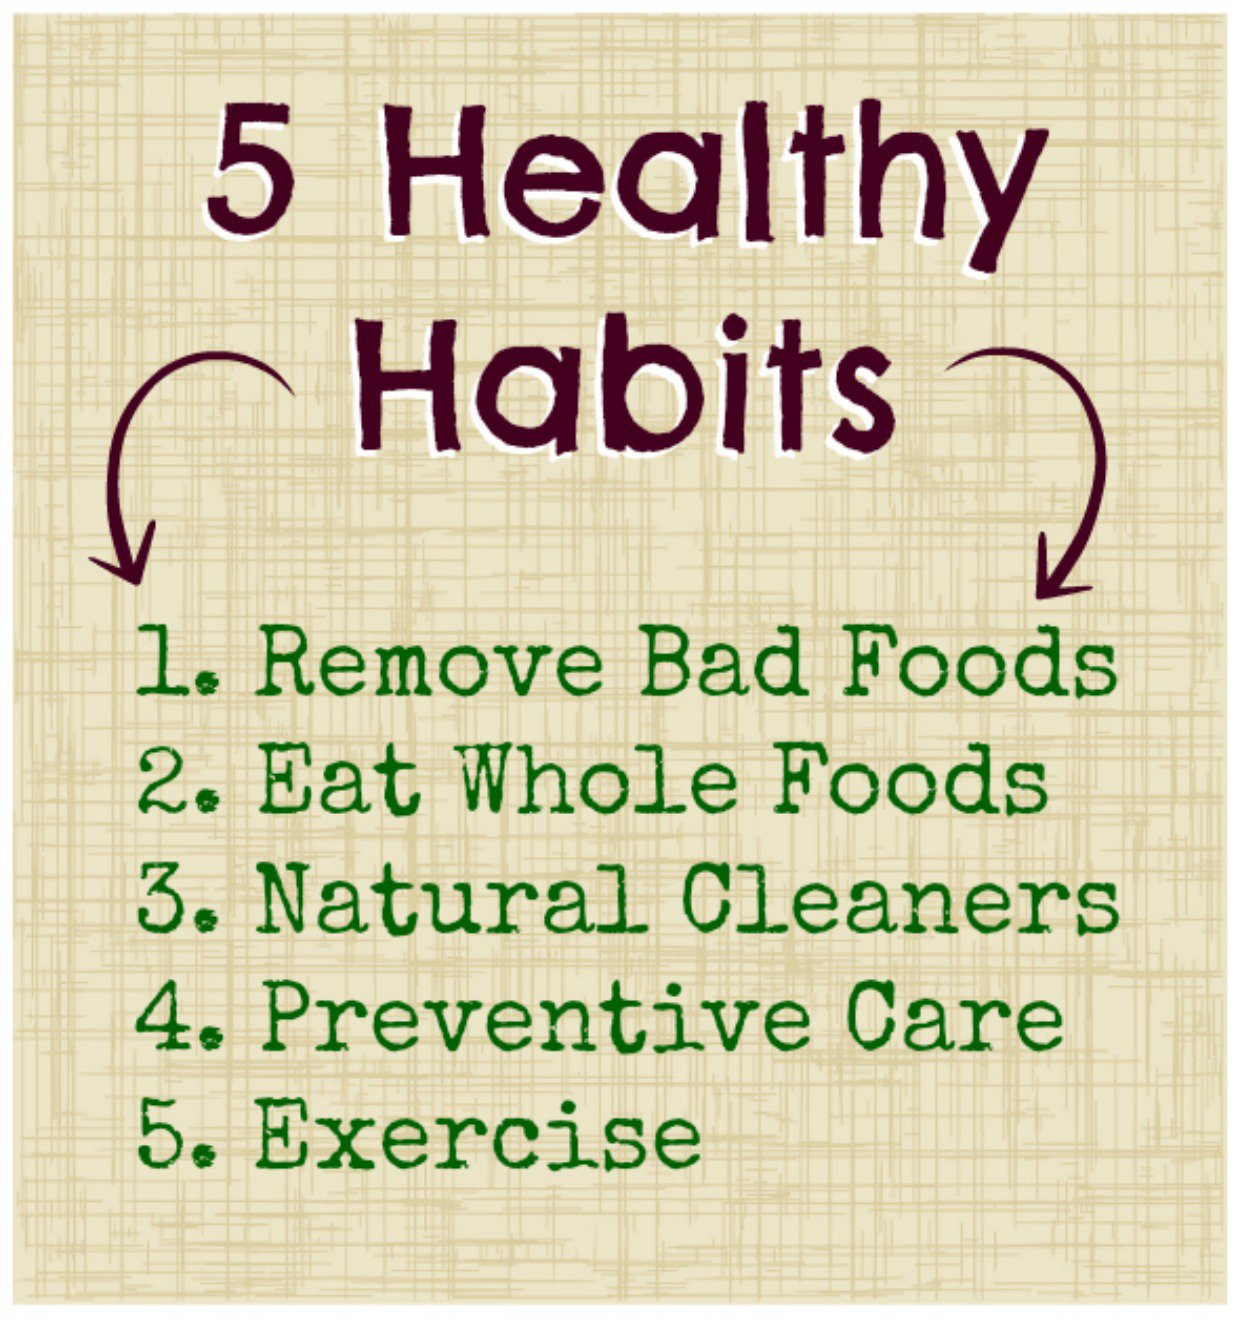 healthy eating essays healthy eating habits essays studymode a good habit essays a good habit essays good habits essays how representation essay healthy habits